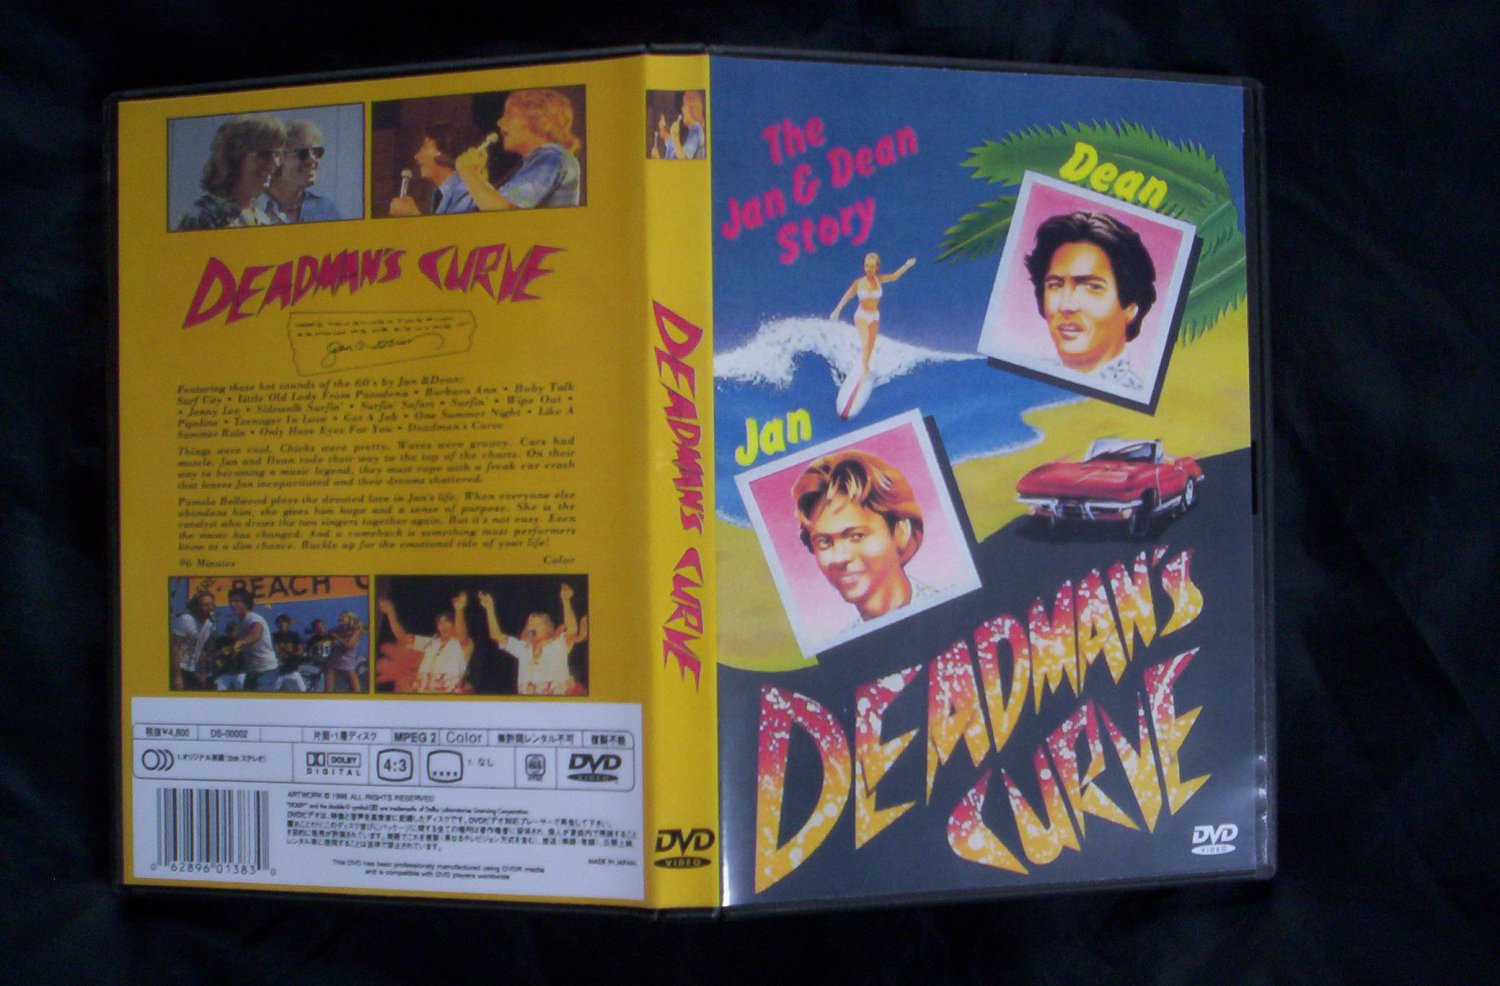 Deadman's Curve DVD The Jan and Dean Story 1978